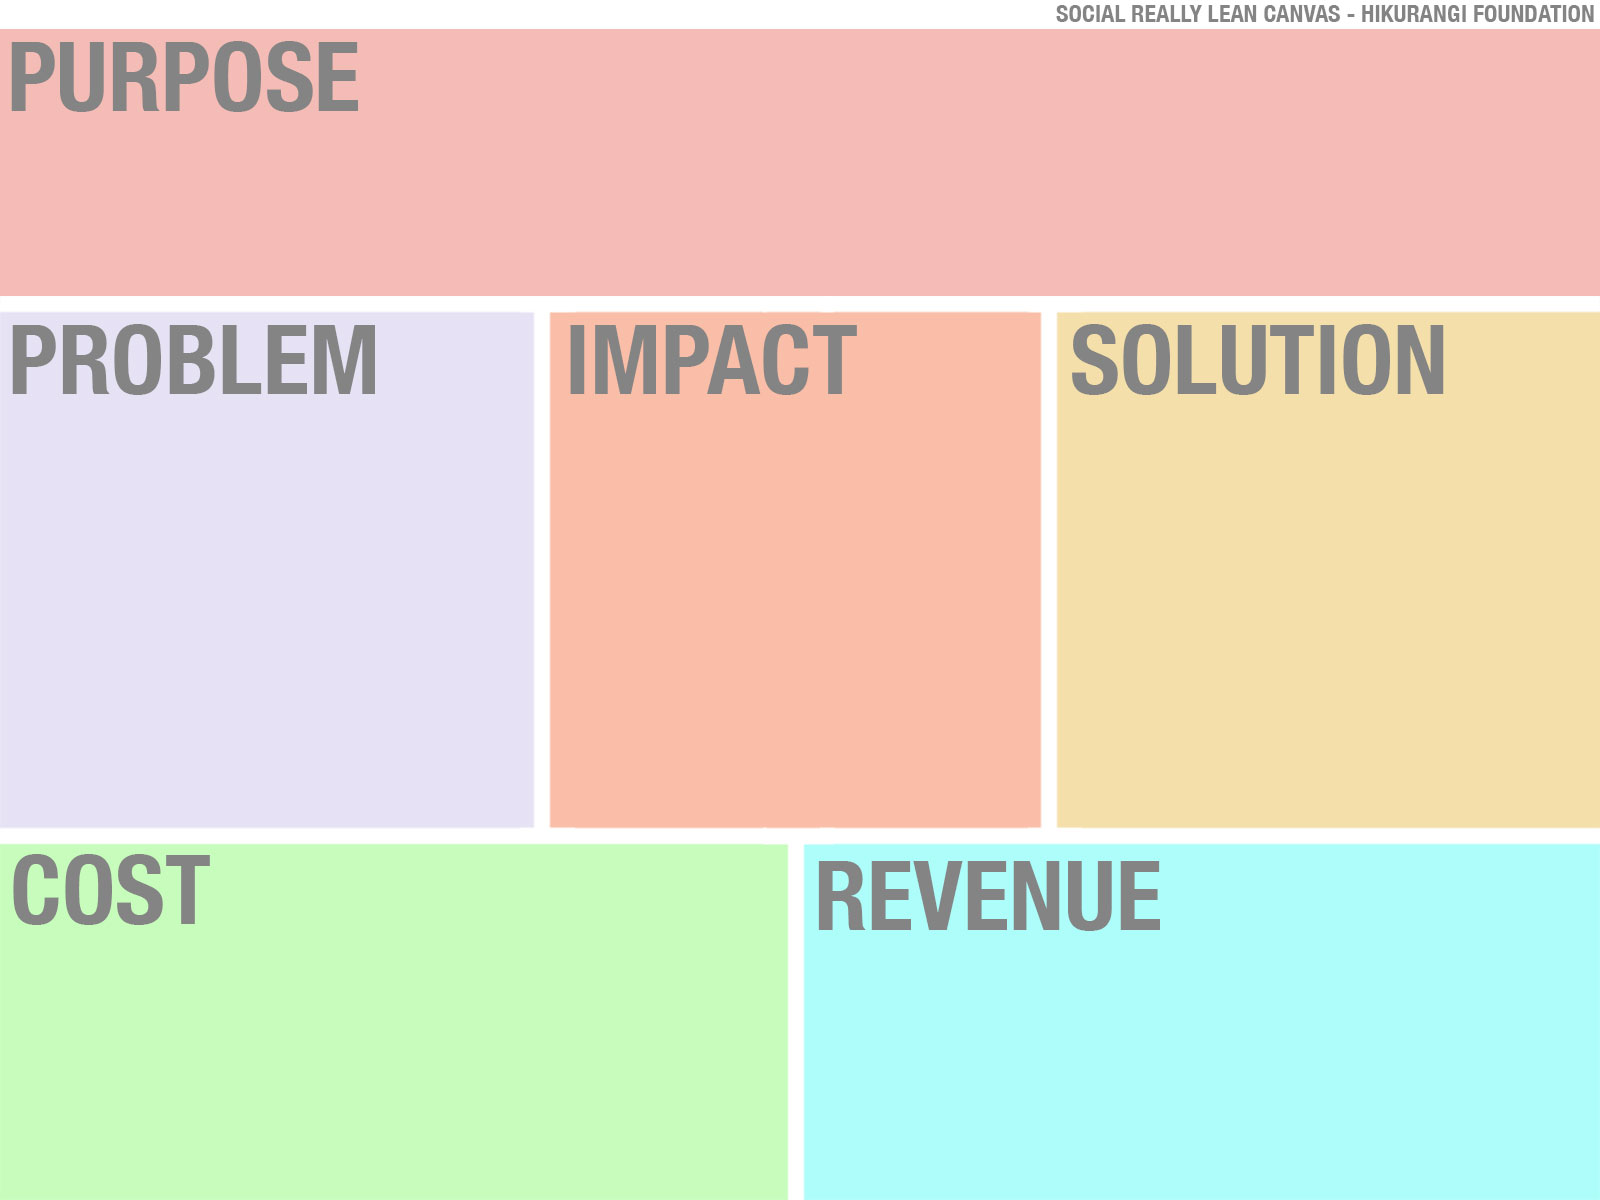 Download 'The Social Really Lean Canvas' JPG